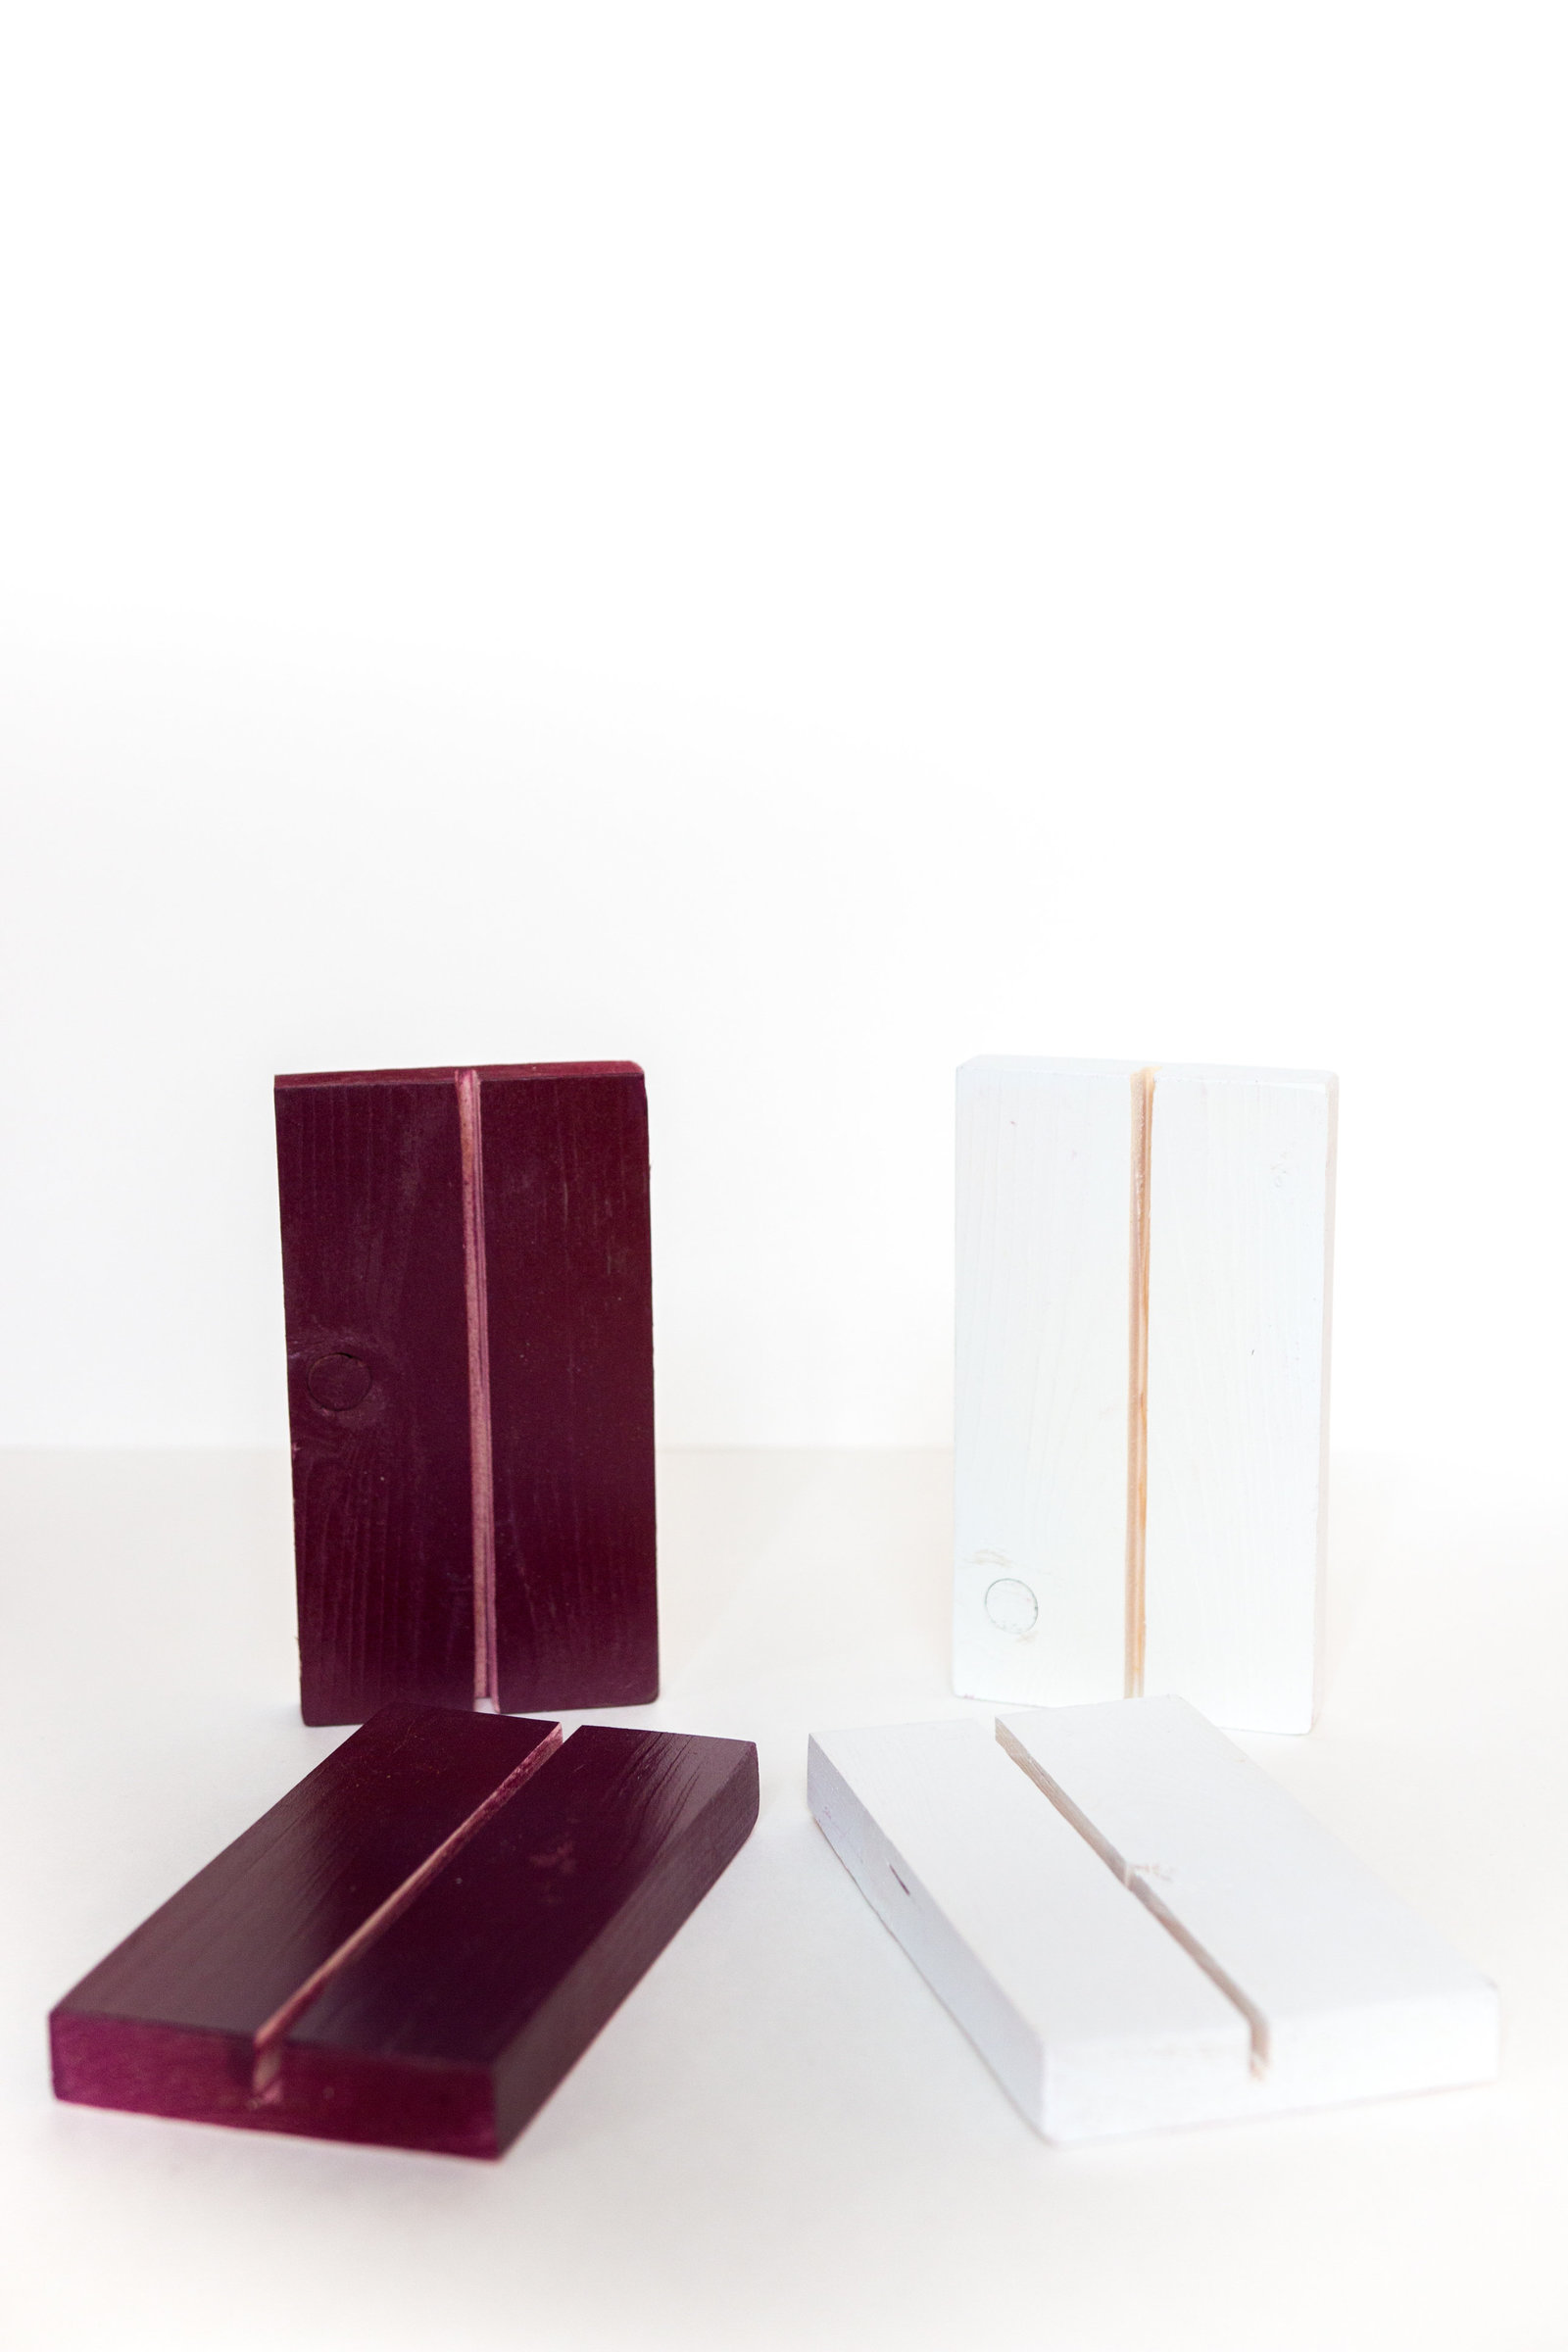 Mauve and white wooden stand base for wedding or event signage to rent through Hue + FA Rental